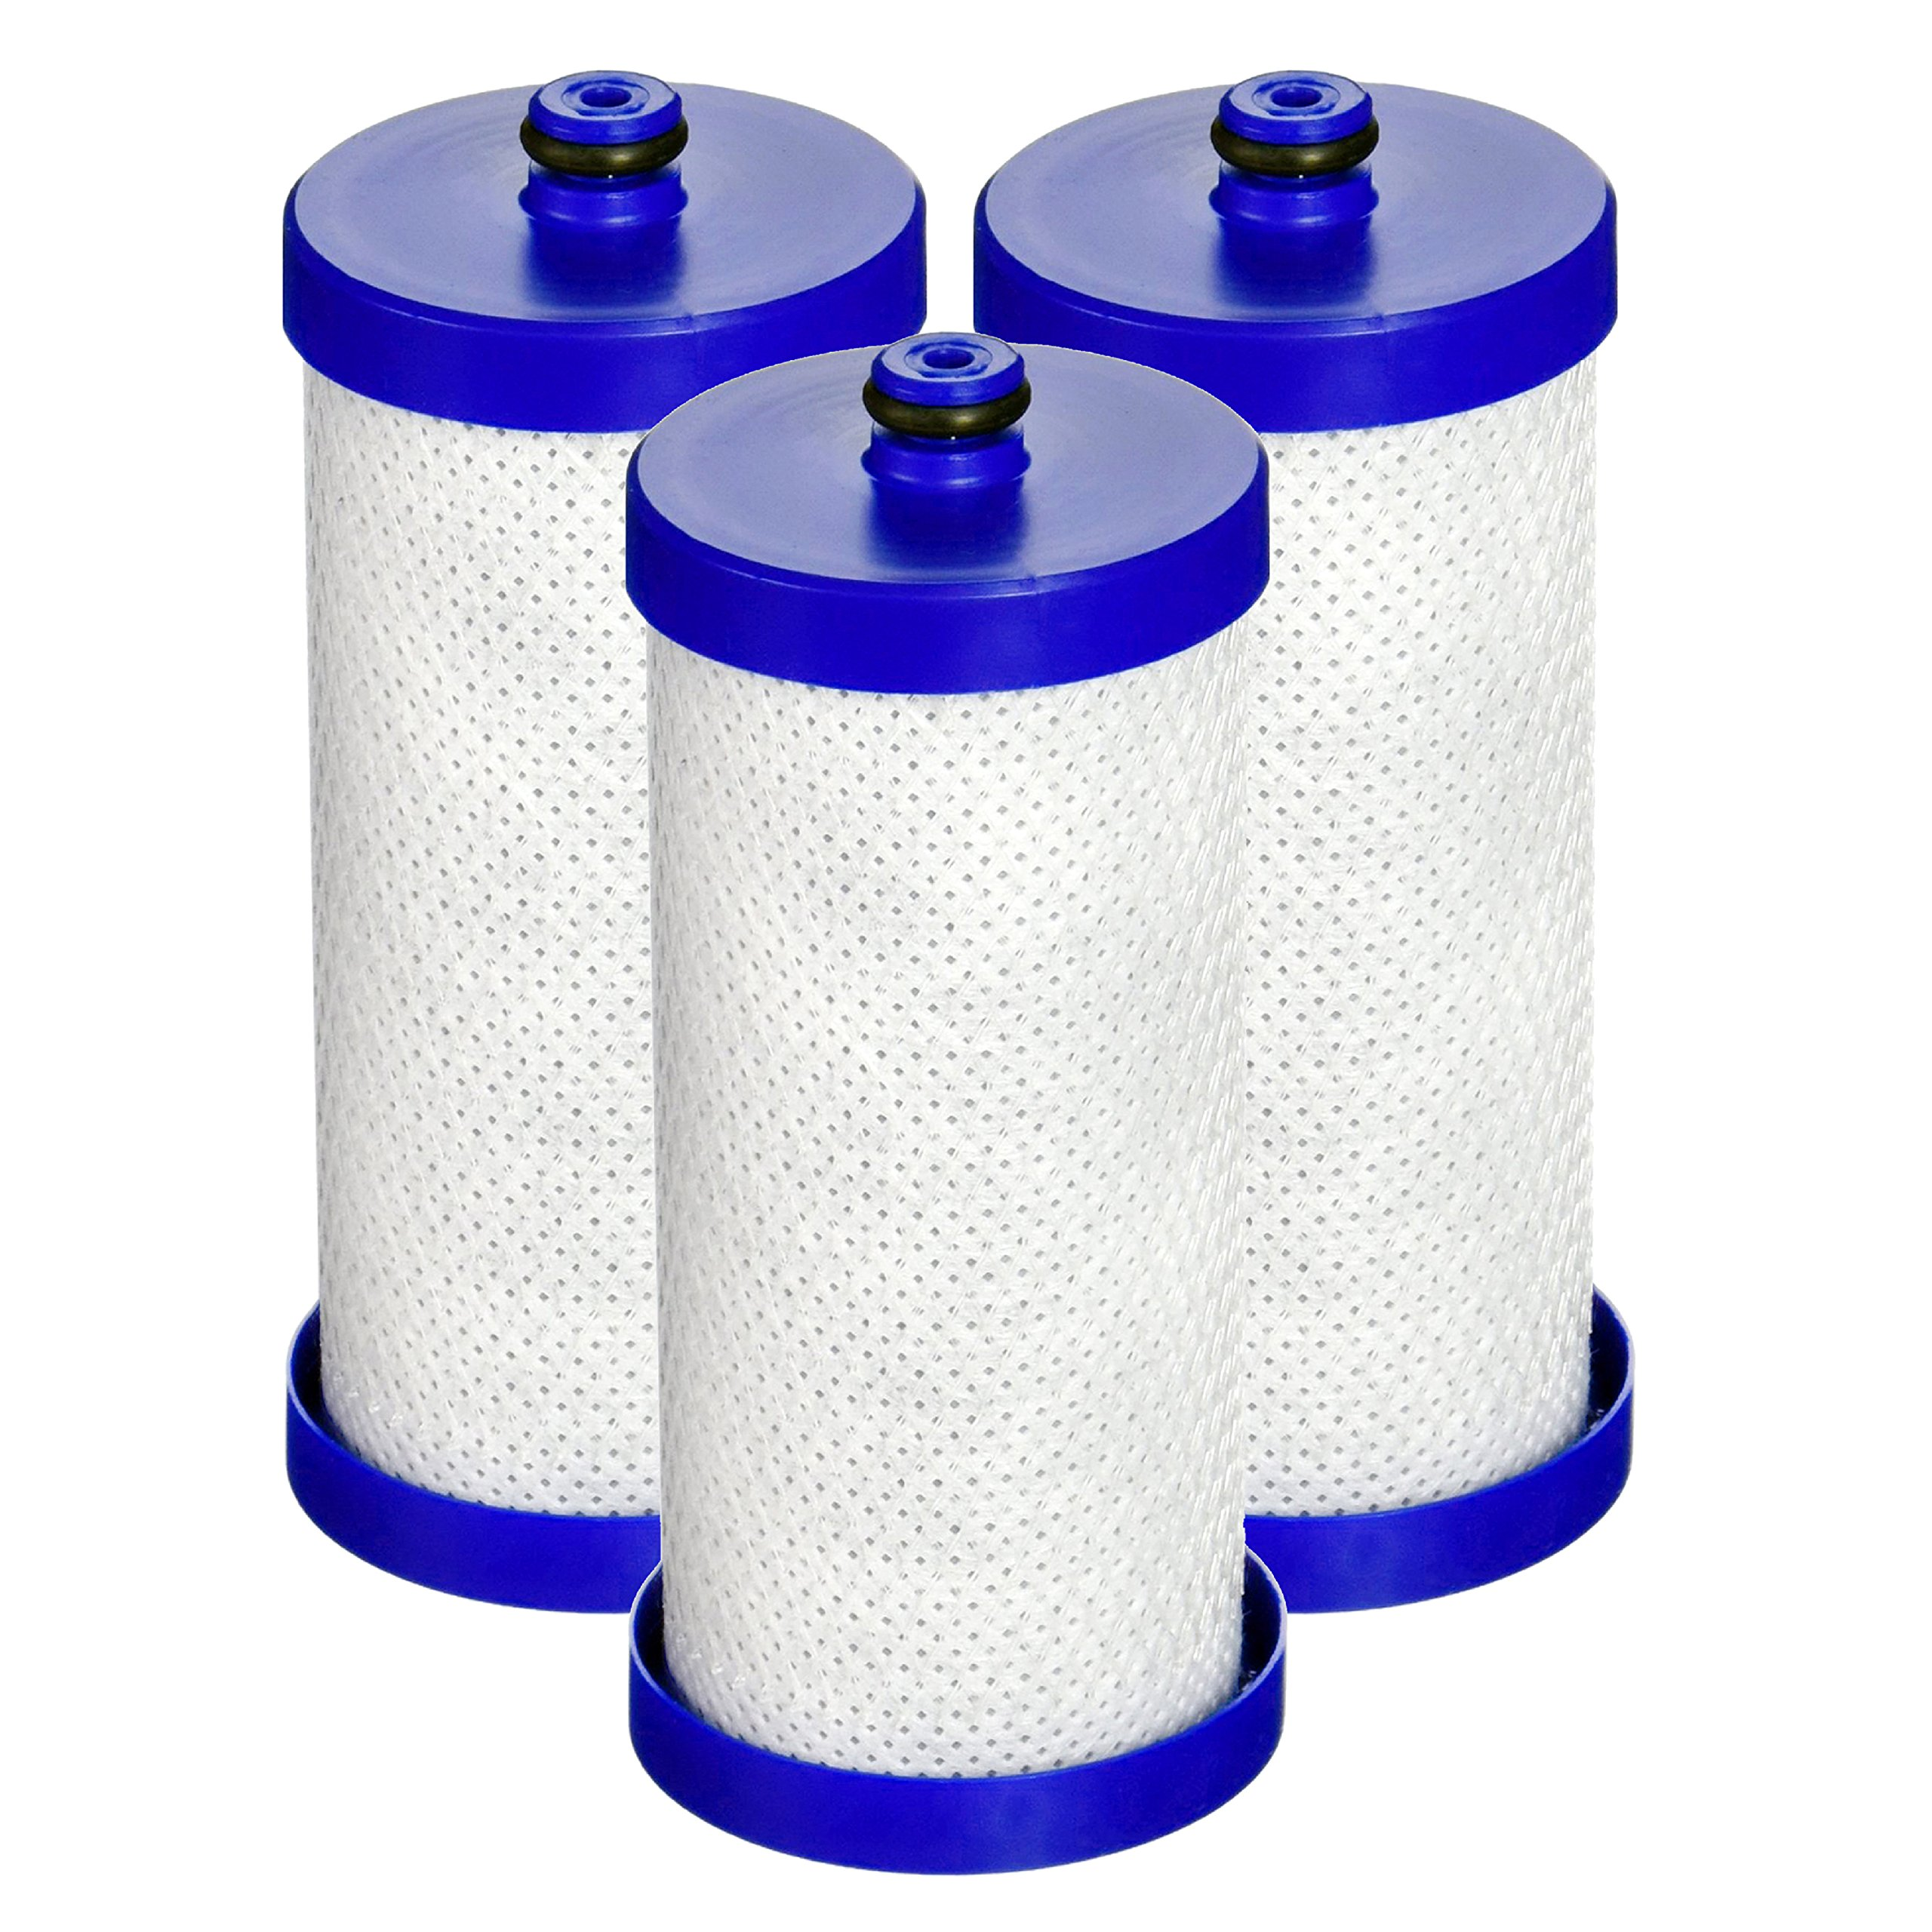 Waterdrop Replacement Refrigerator Water Filter, Compatible with WF1CB, WFCB, RG100, NGRG2000, WF284, 9910, 469906, 469910 (3 Pack)